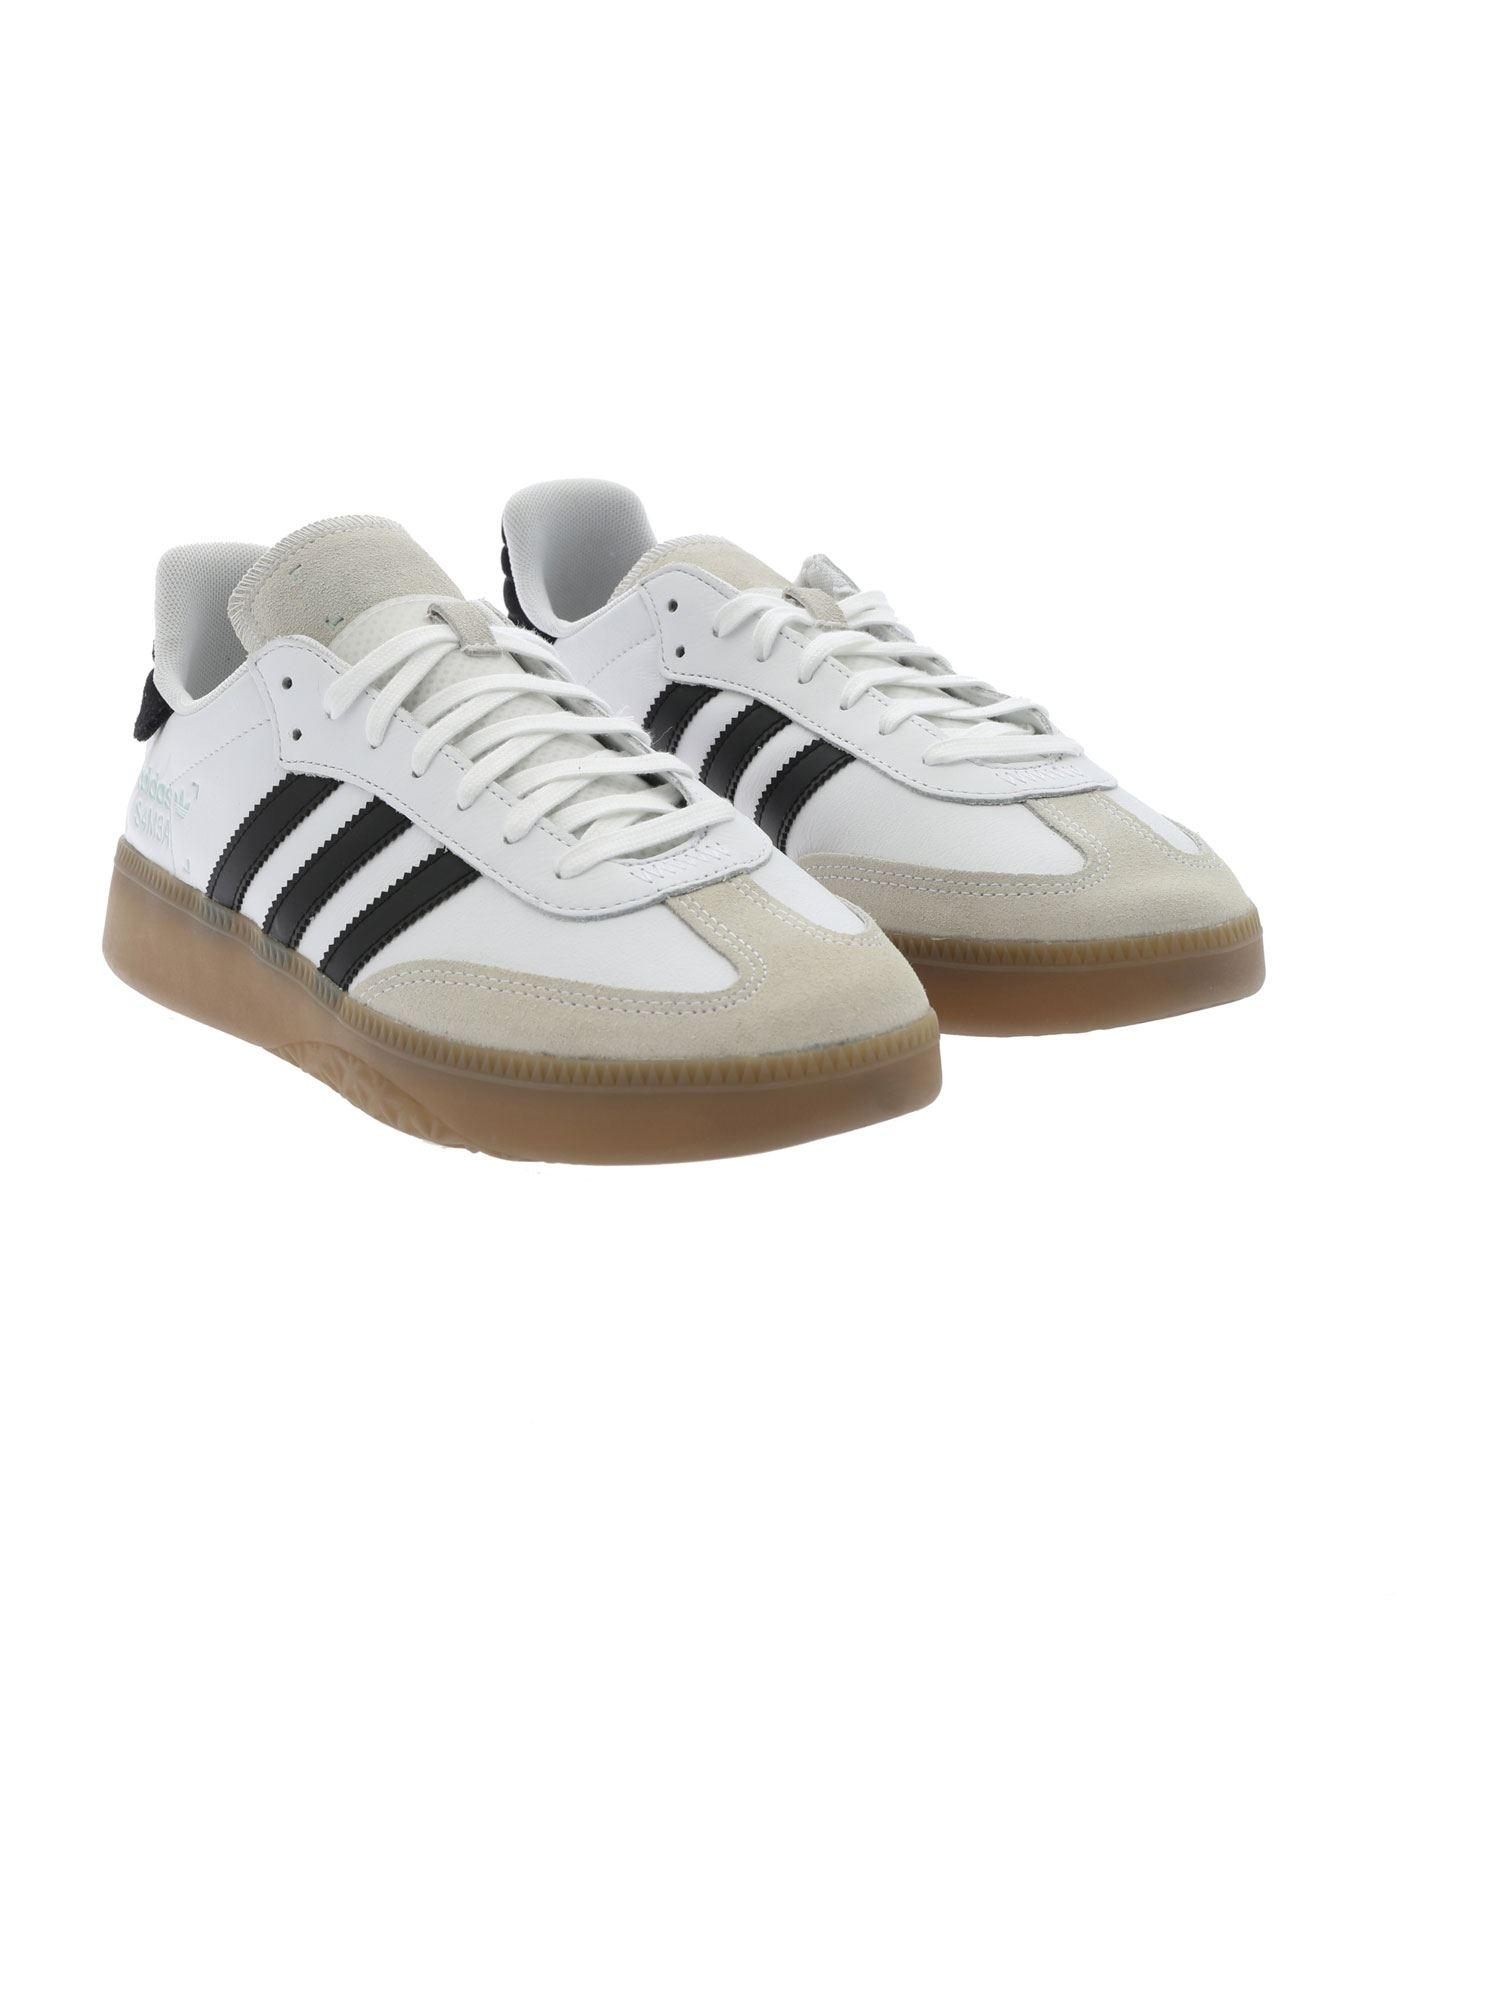 Lyst - adidas Originals Samba Rm Sneakers In White in White for Men